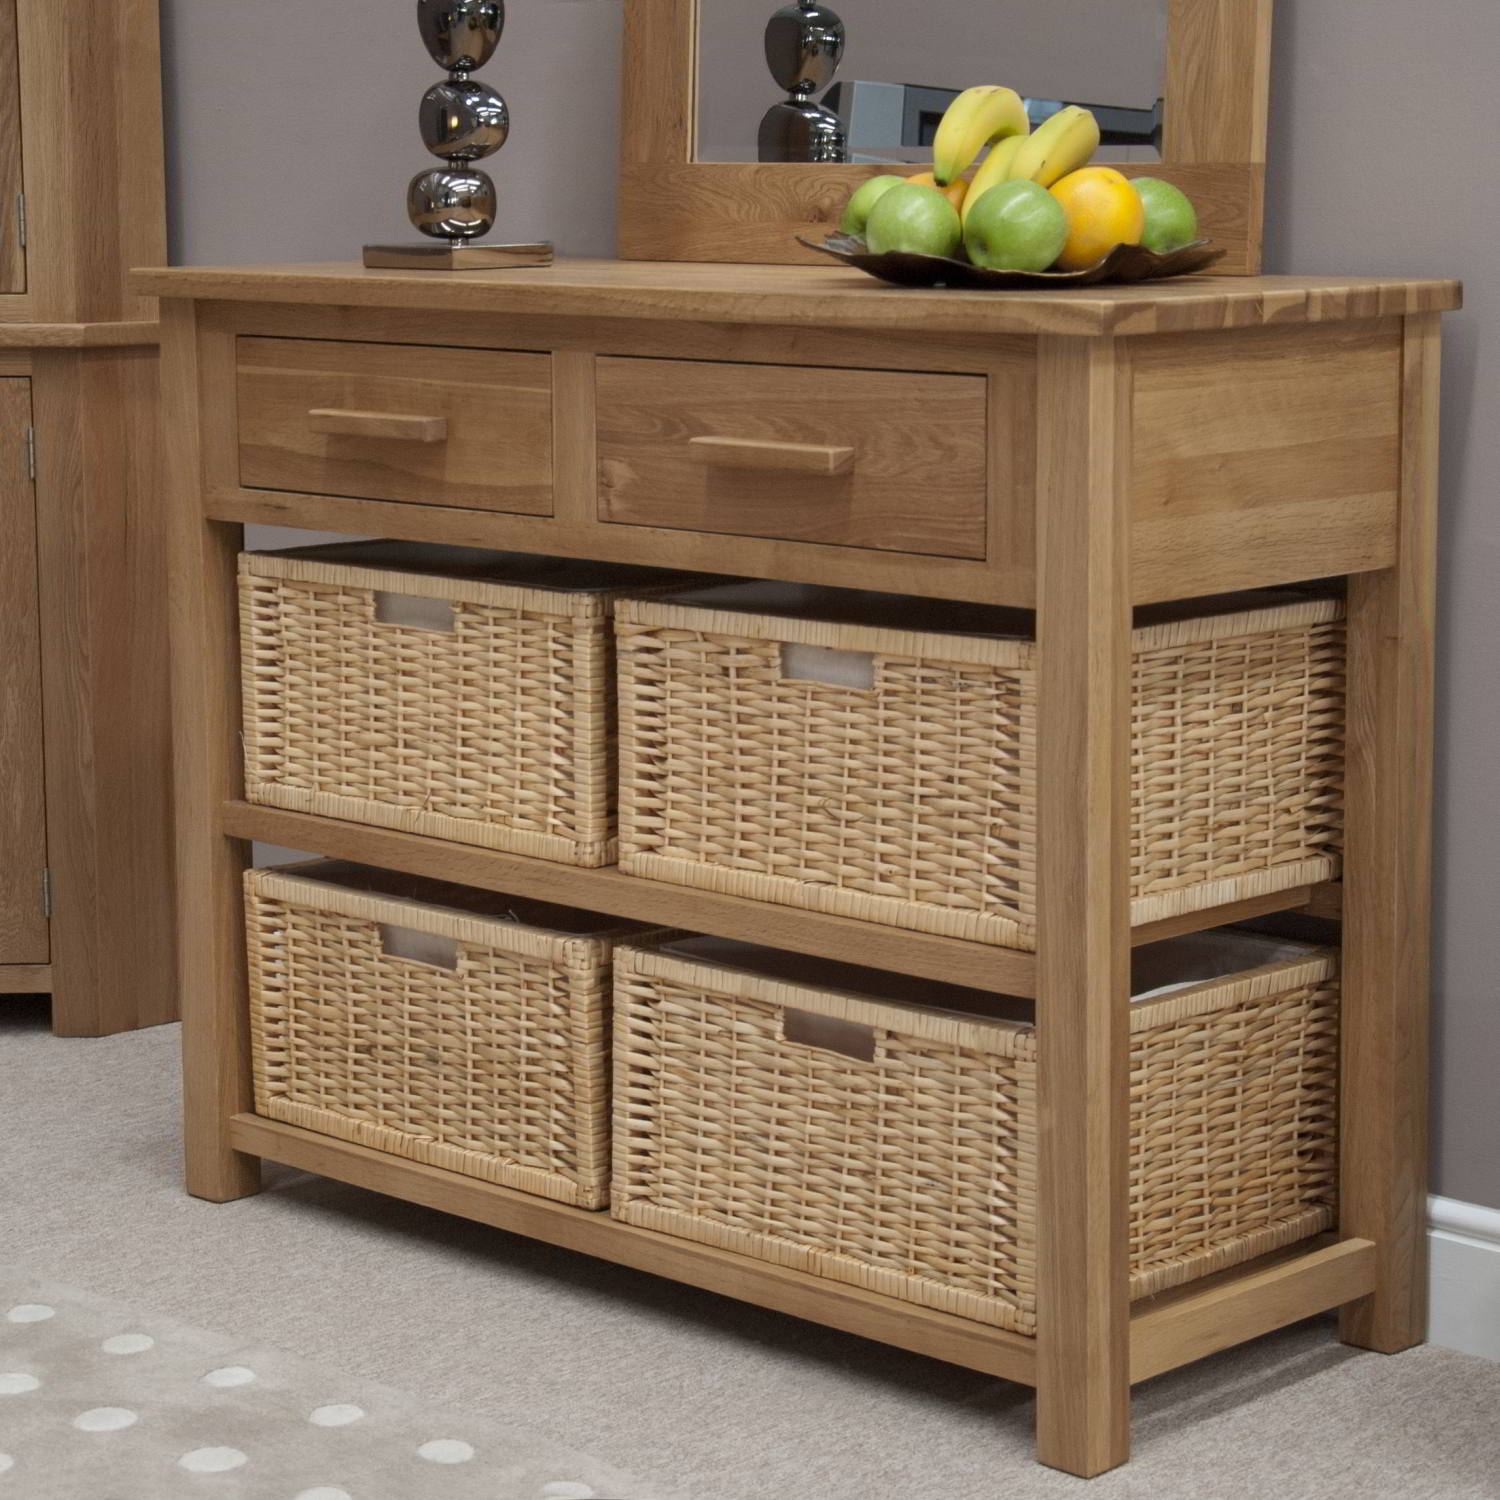 Eton solid modern oak hallway furniture basket hall  : 53717 from www.ebay.co.uk size 1500 x 1500 jpeg 249kB